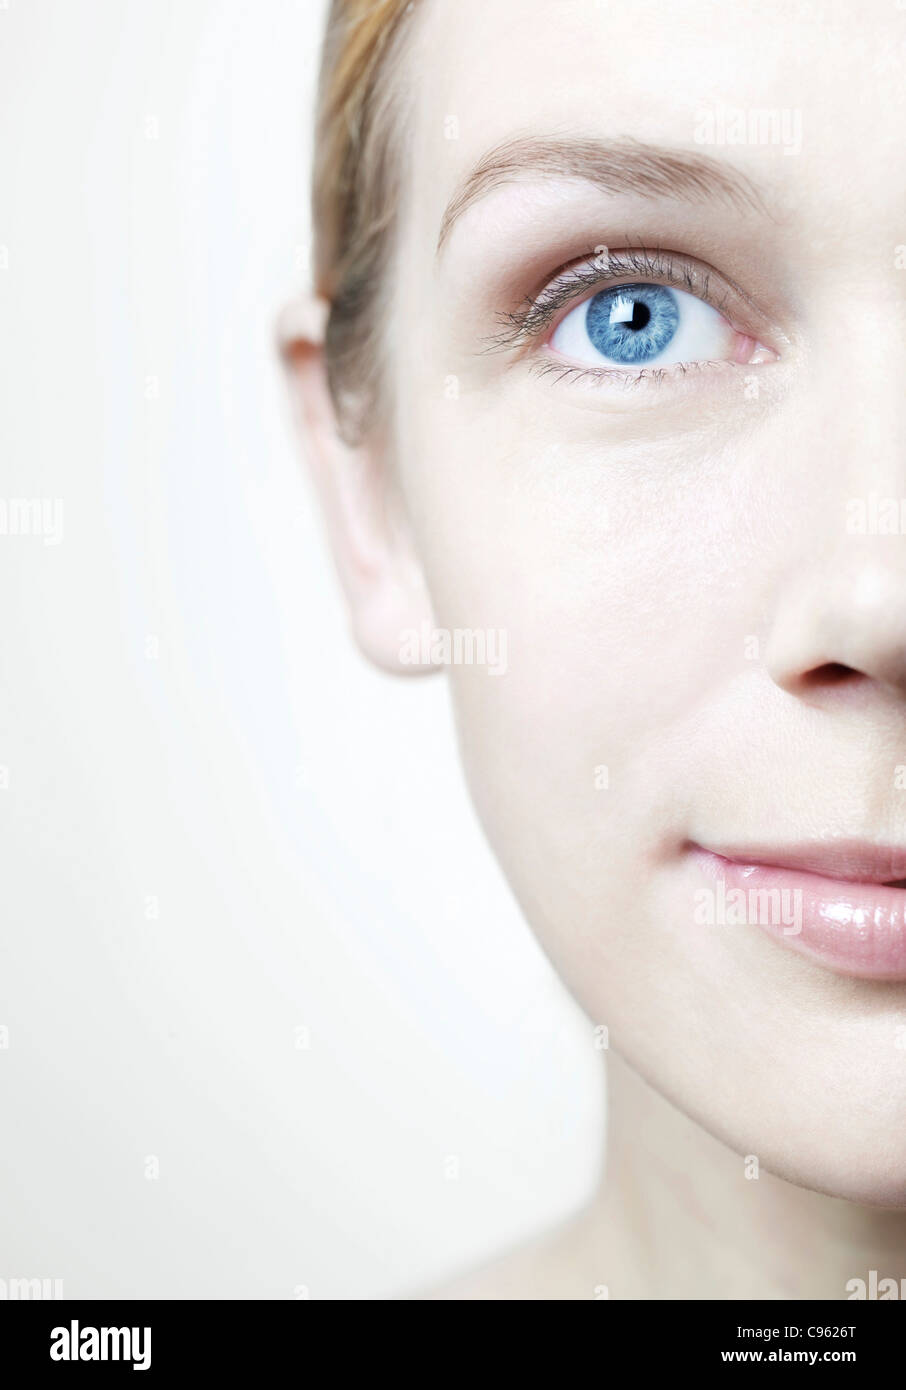 Healthy woman's face. - Stock Image